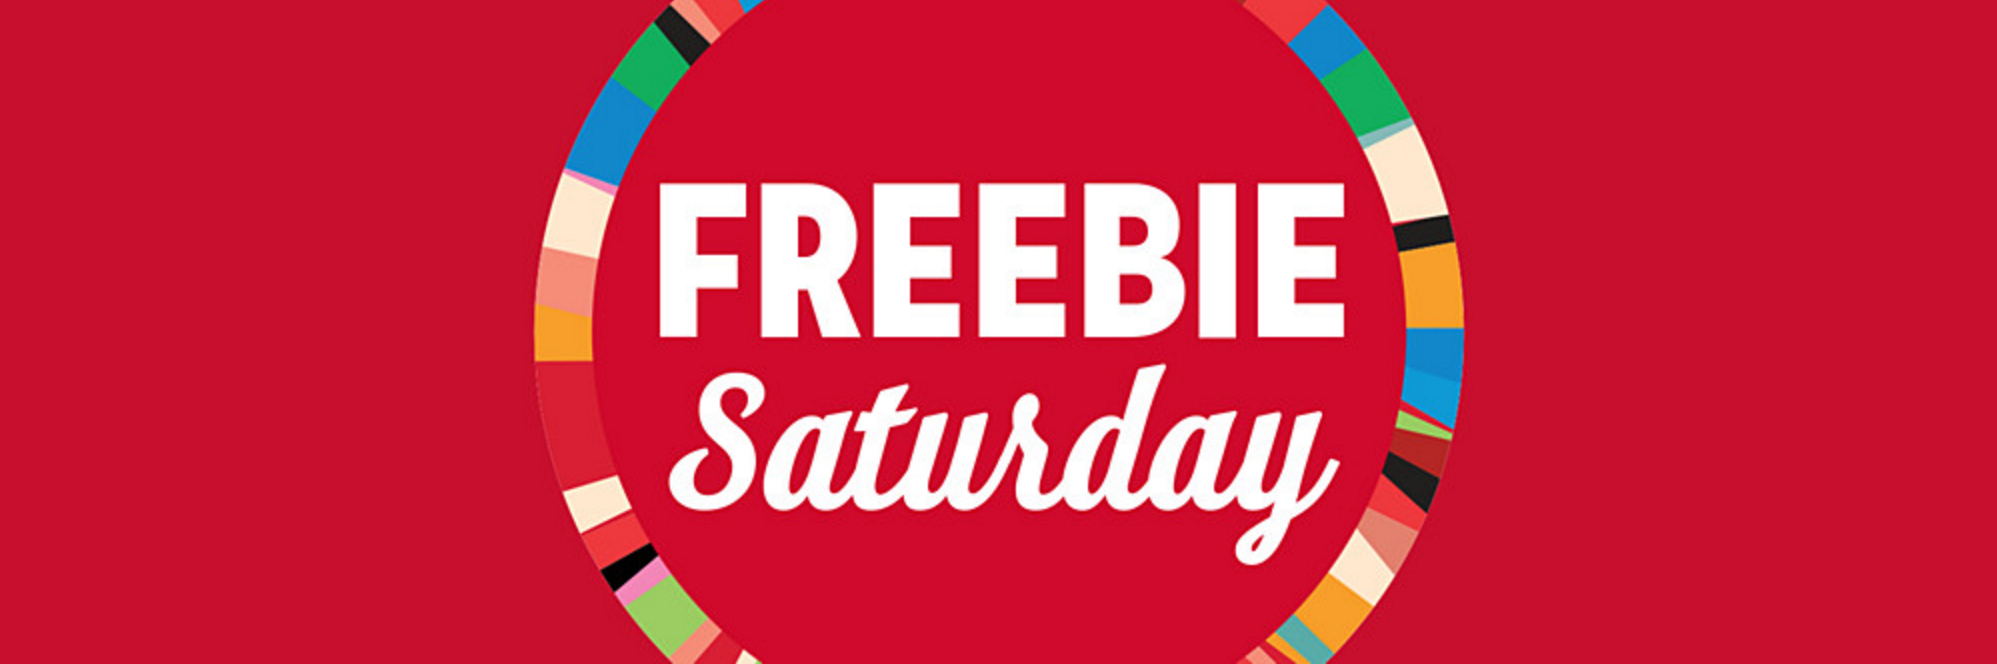 Kmart Freebie Saturday – Chiringa